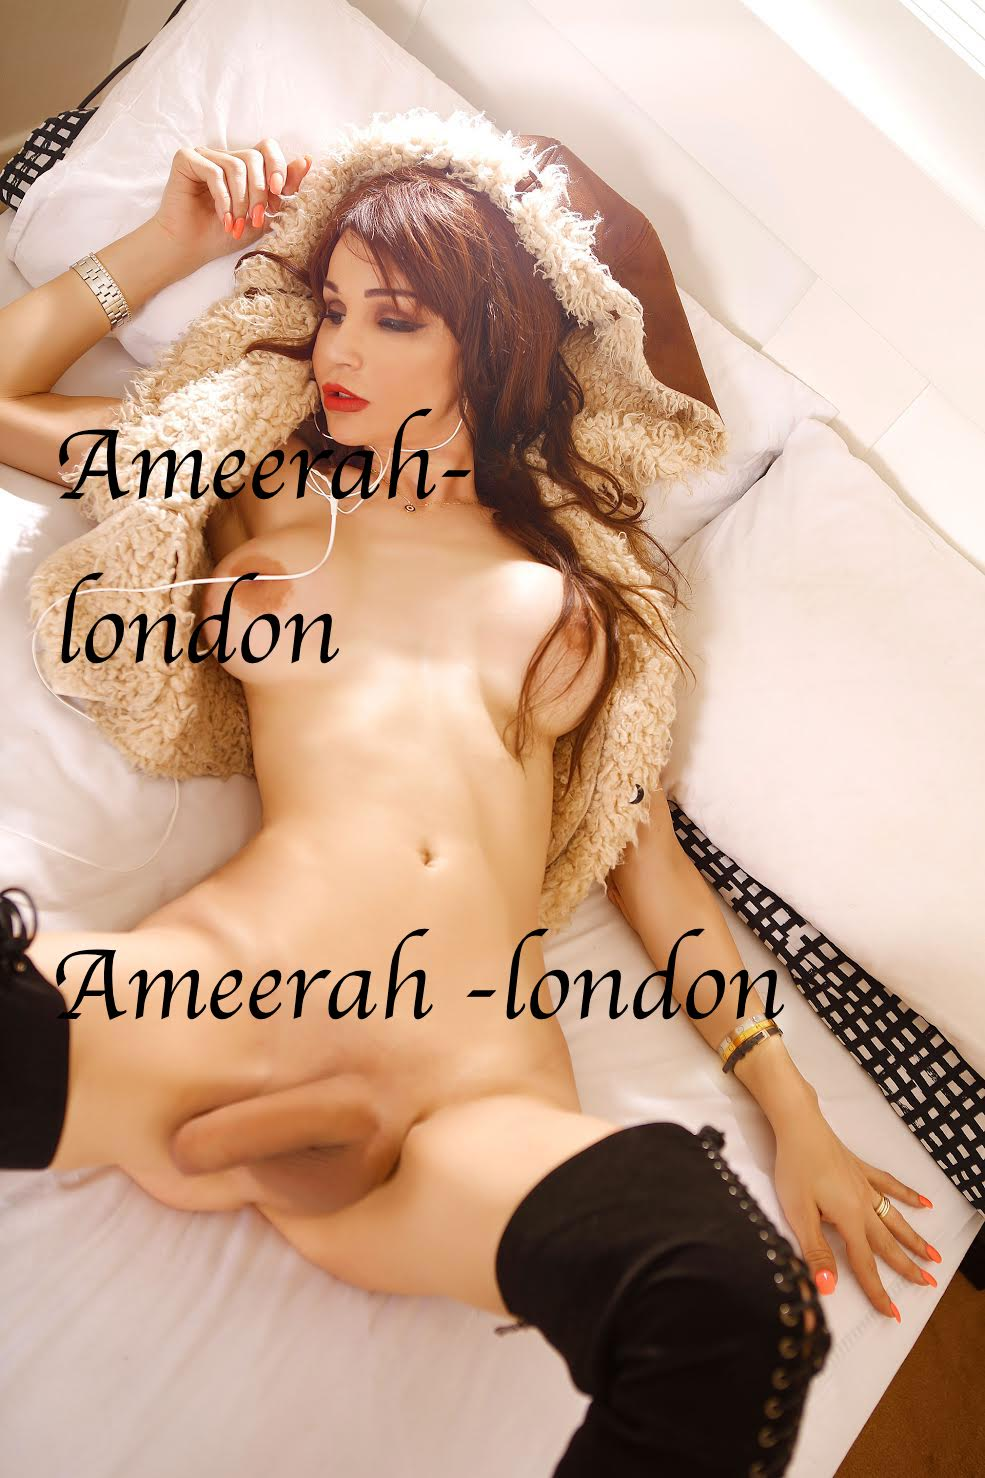 Arab arabic escorts